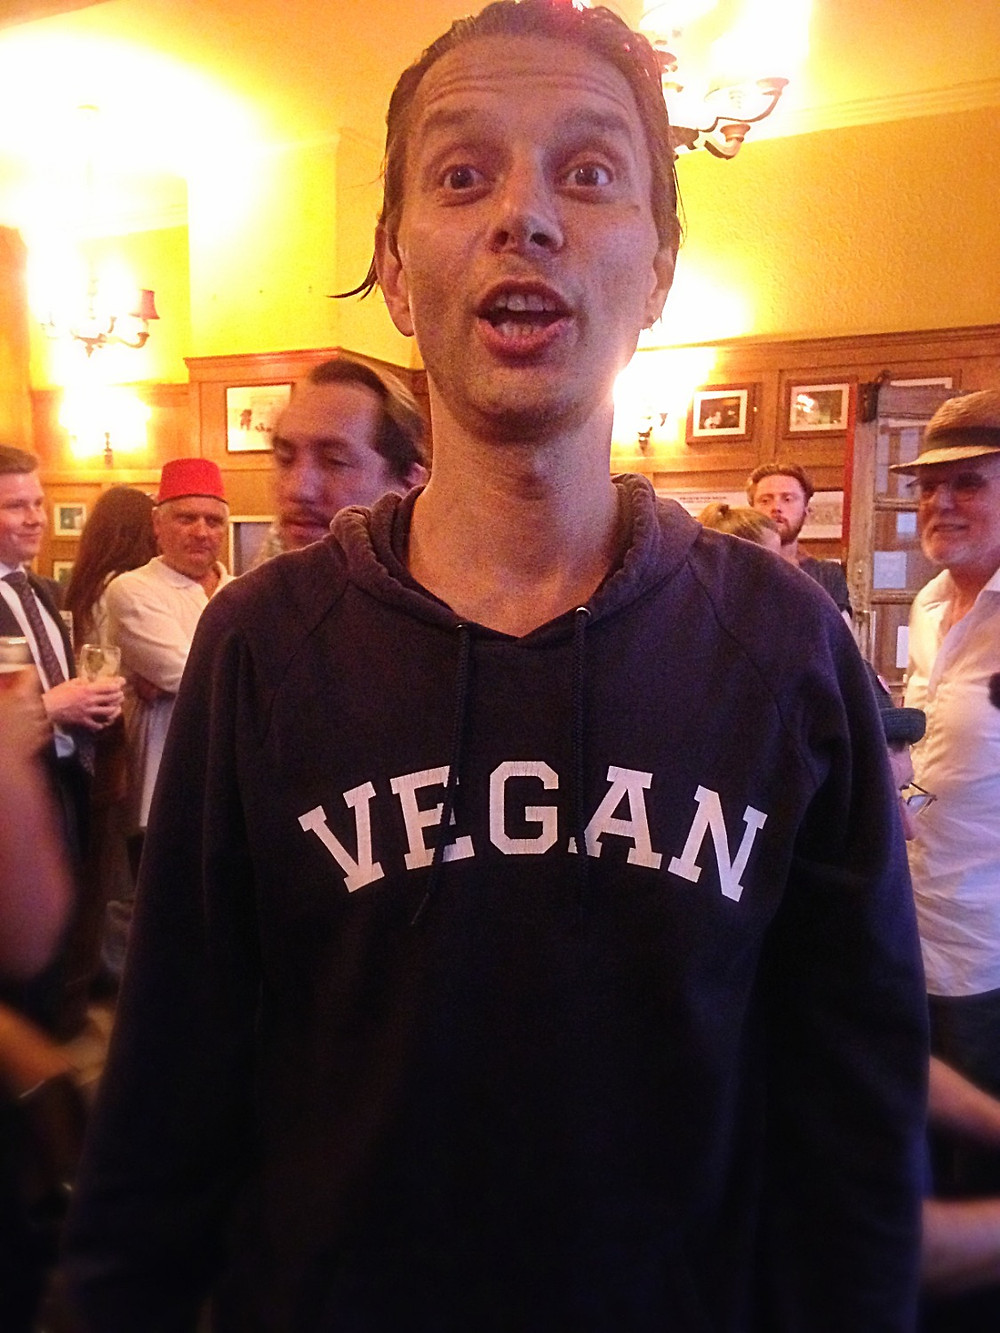 one of the regulars at The Coach & Horses sing-a-long